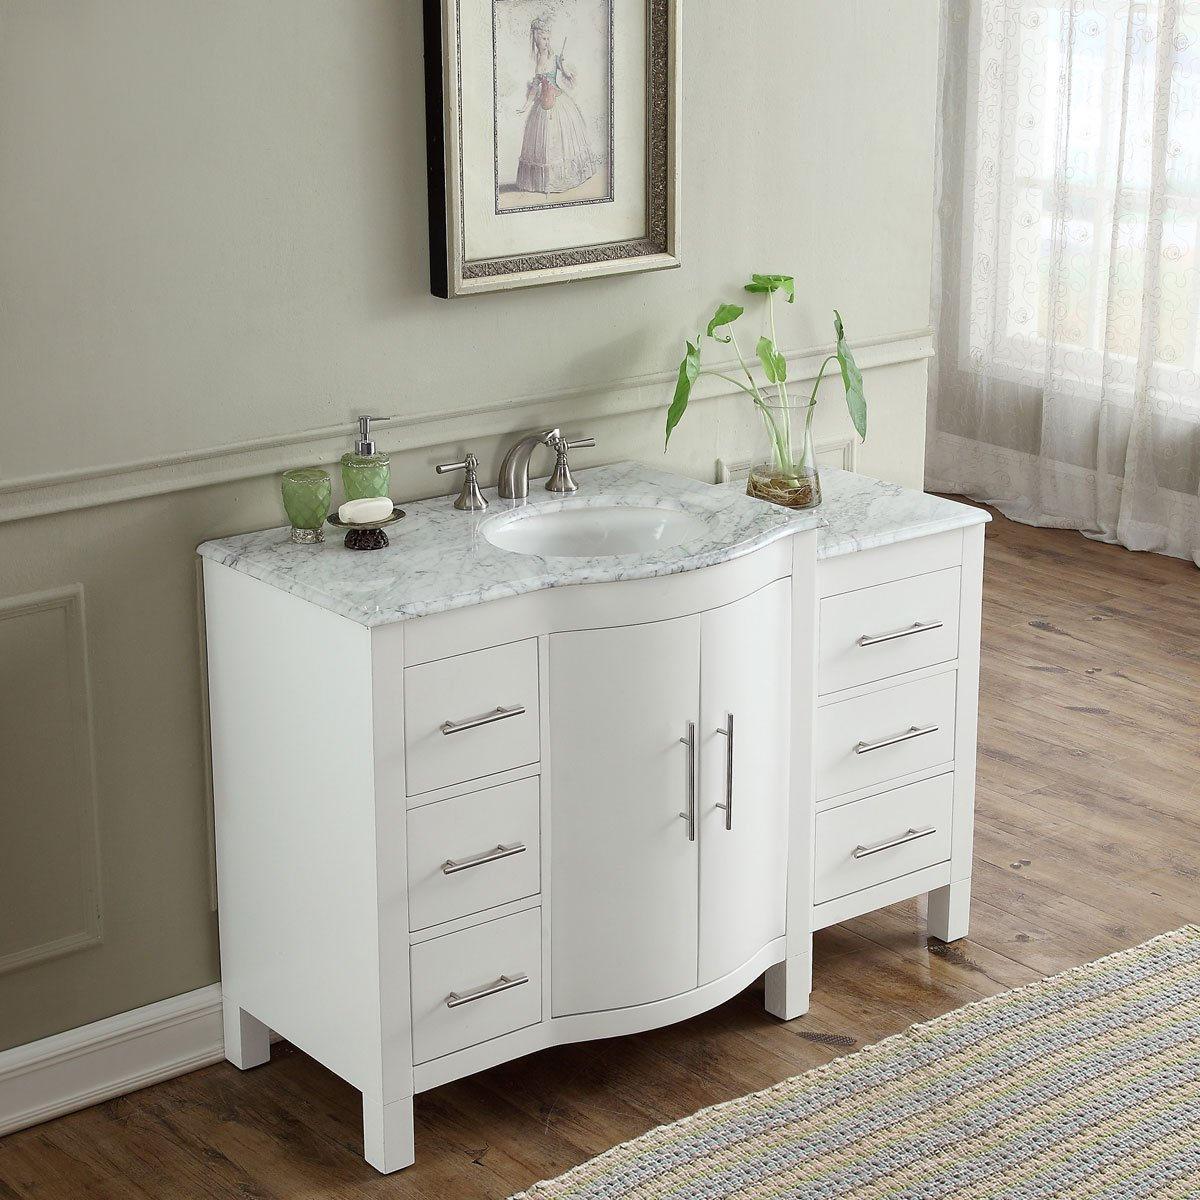 54 inch single sink contemporary bathroom vanity white finish carrara marble top Marble top bathroom vanities